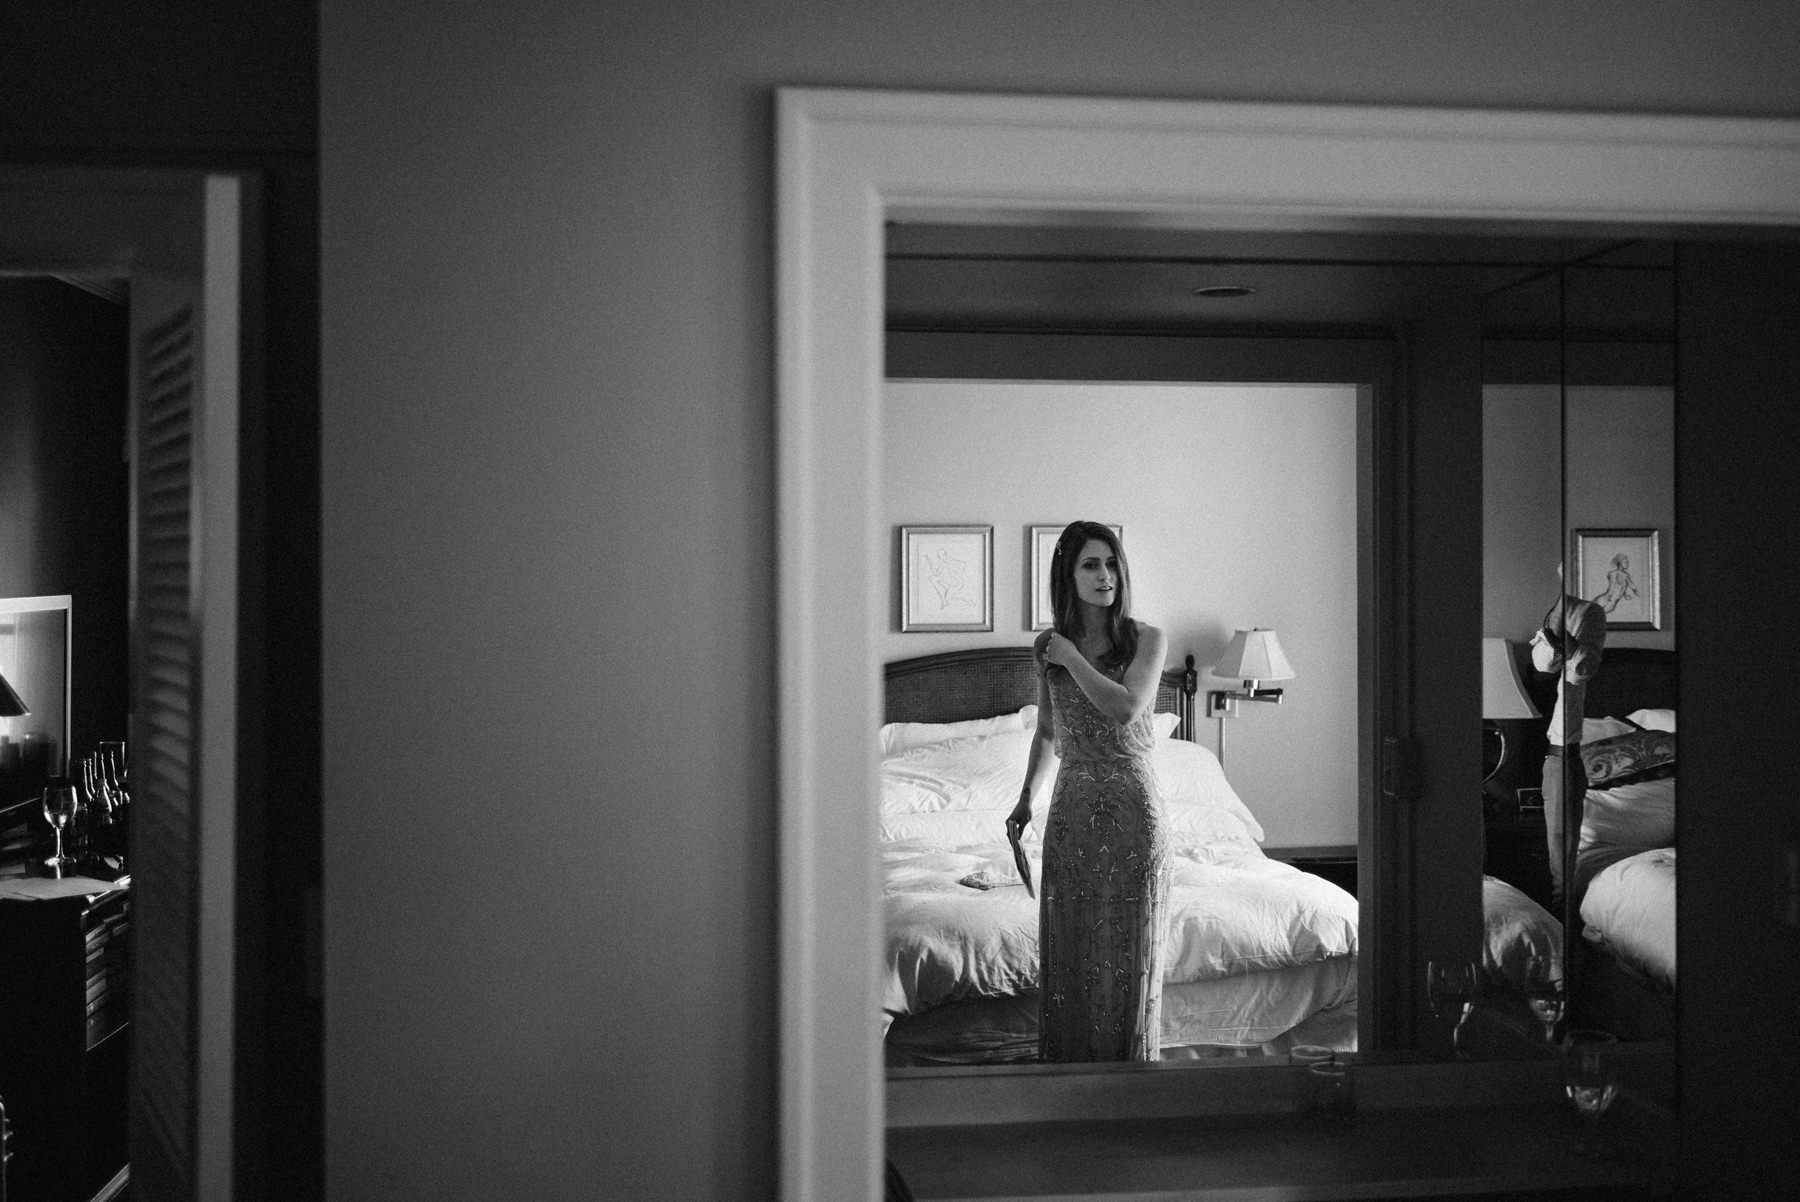 009-bride-and-groom-getting-ready-before-their-wedding-at-hotel-sorrento-in-seattle.jpg